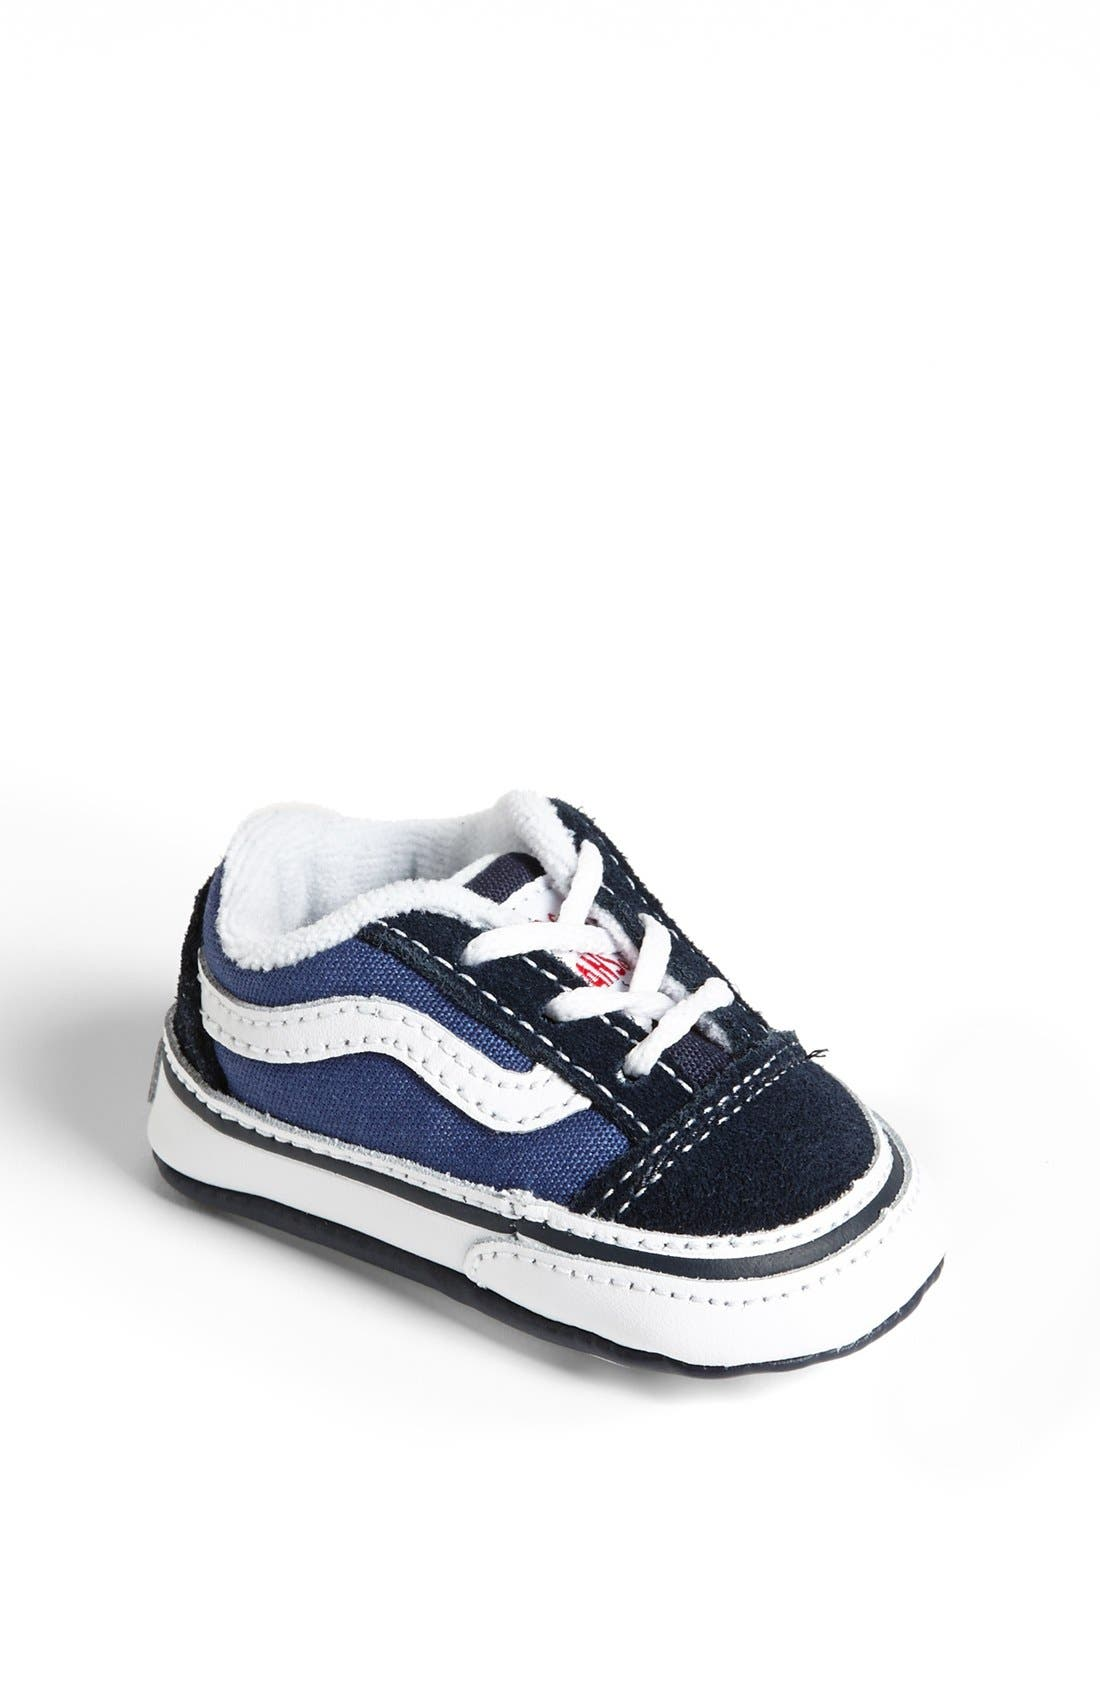 Alternate Image 1 Selected - Vans 'Old Skool' Crib Shoe (Baby)